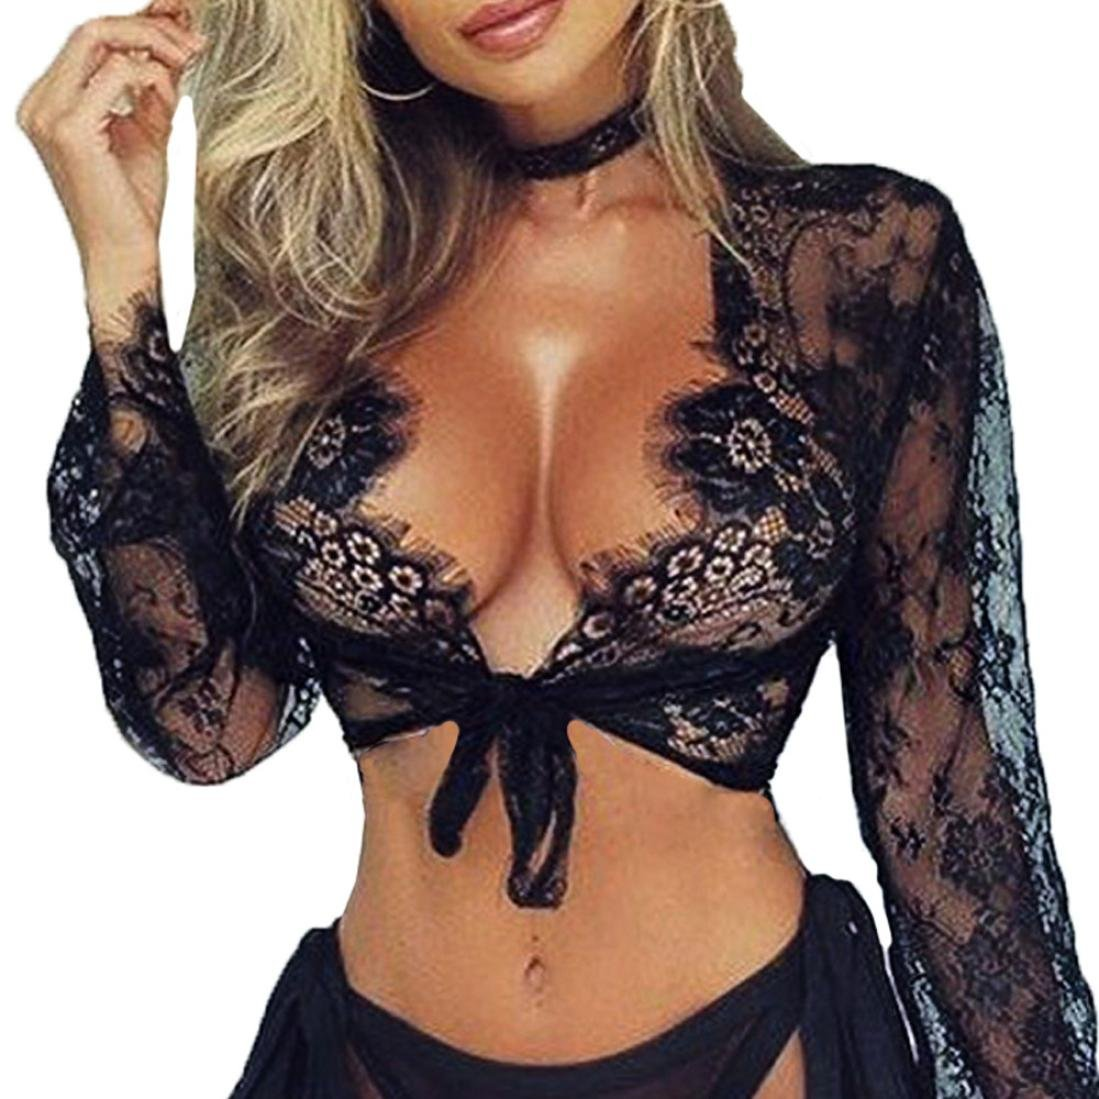 600b8ea7d4 Amazon.com  WM   MW Plus Size Lingerie Shirt